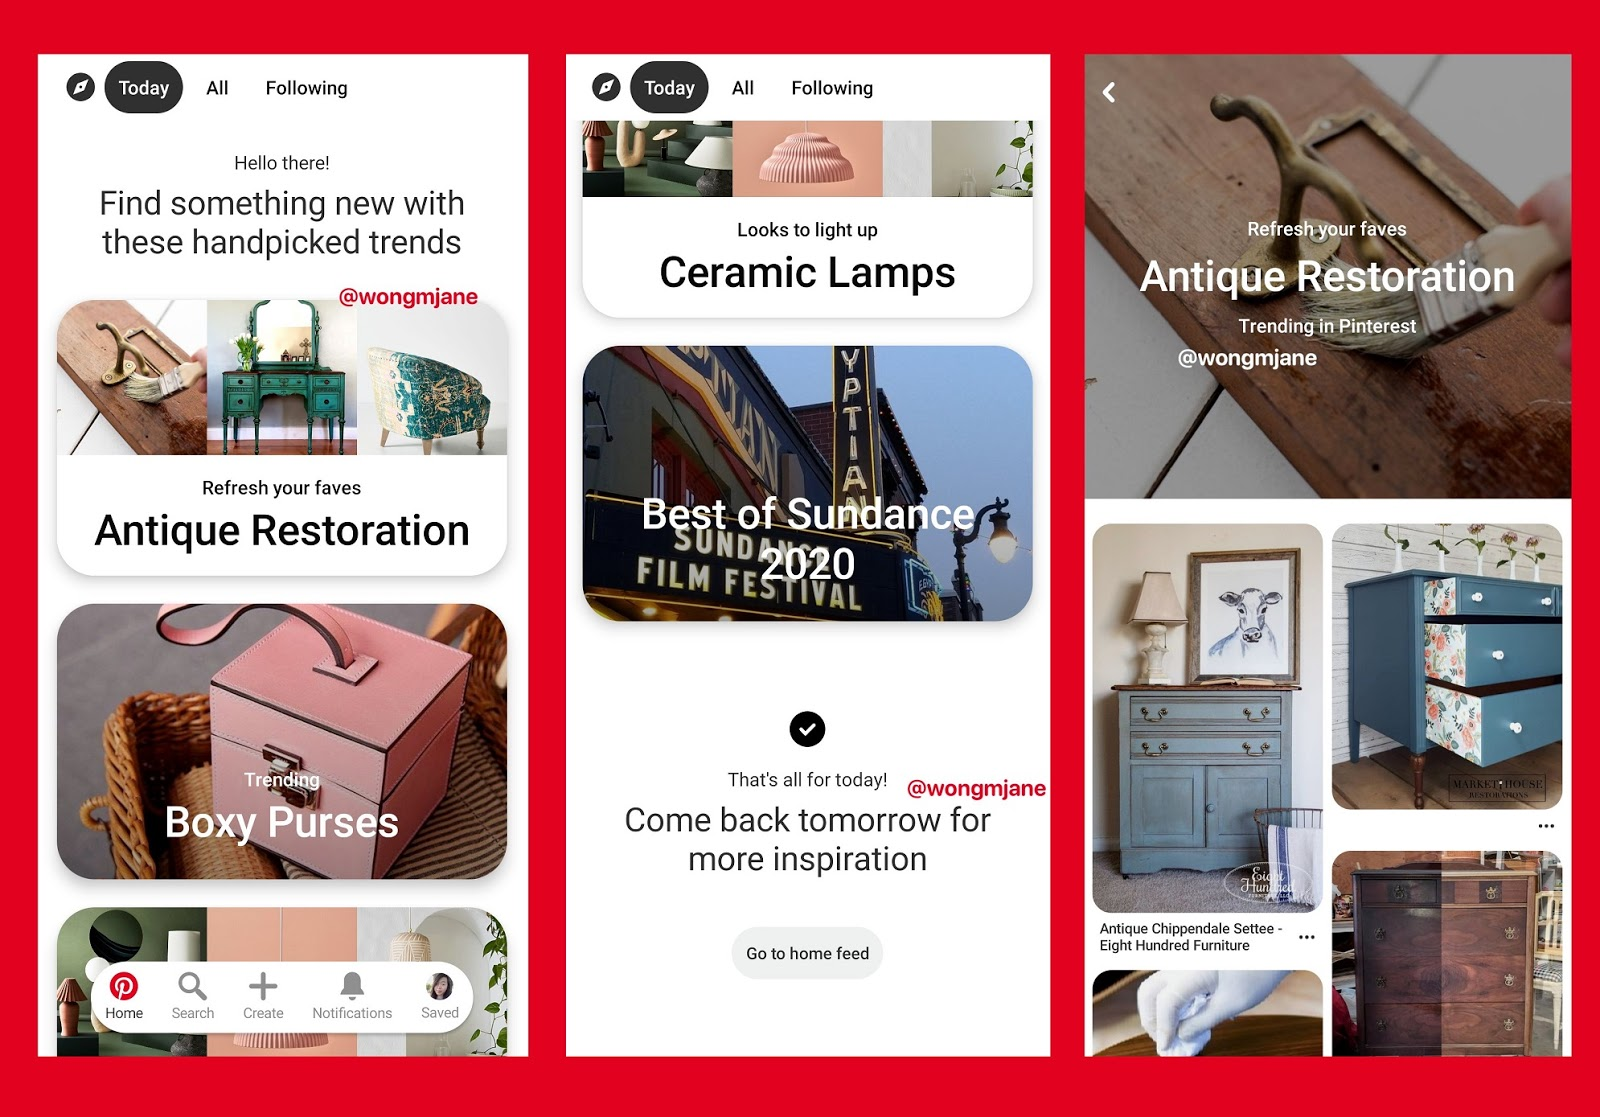 Pinterest Is Working On Today Feed For Handpicked Trends